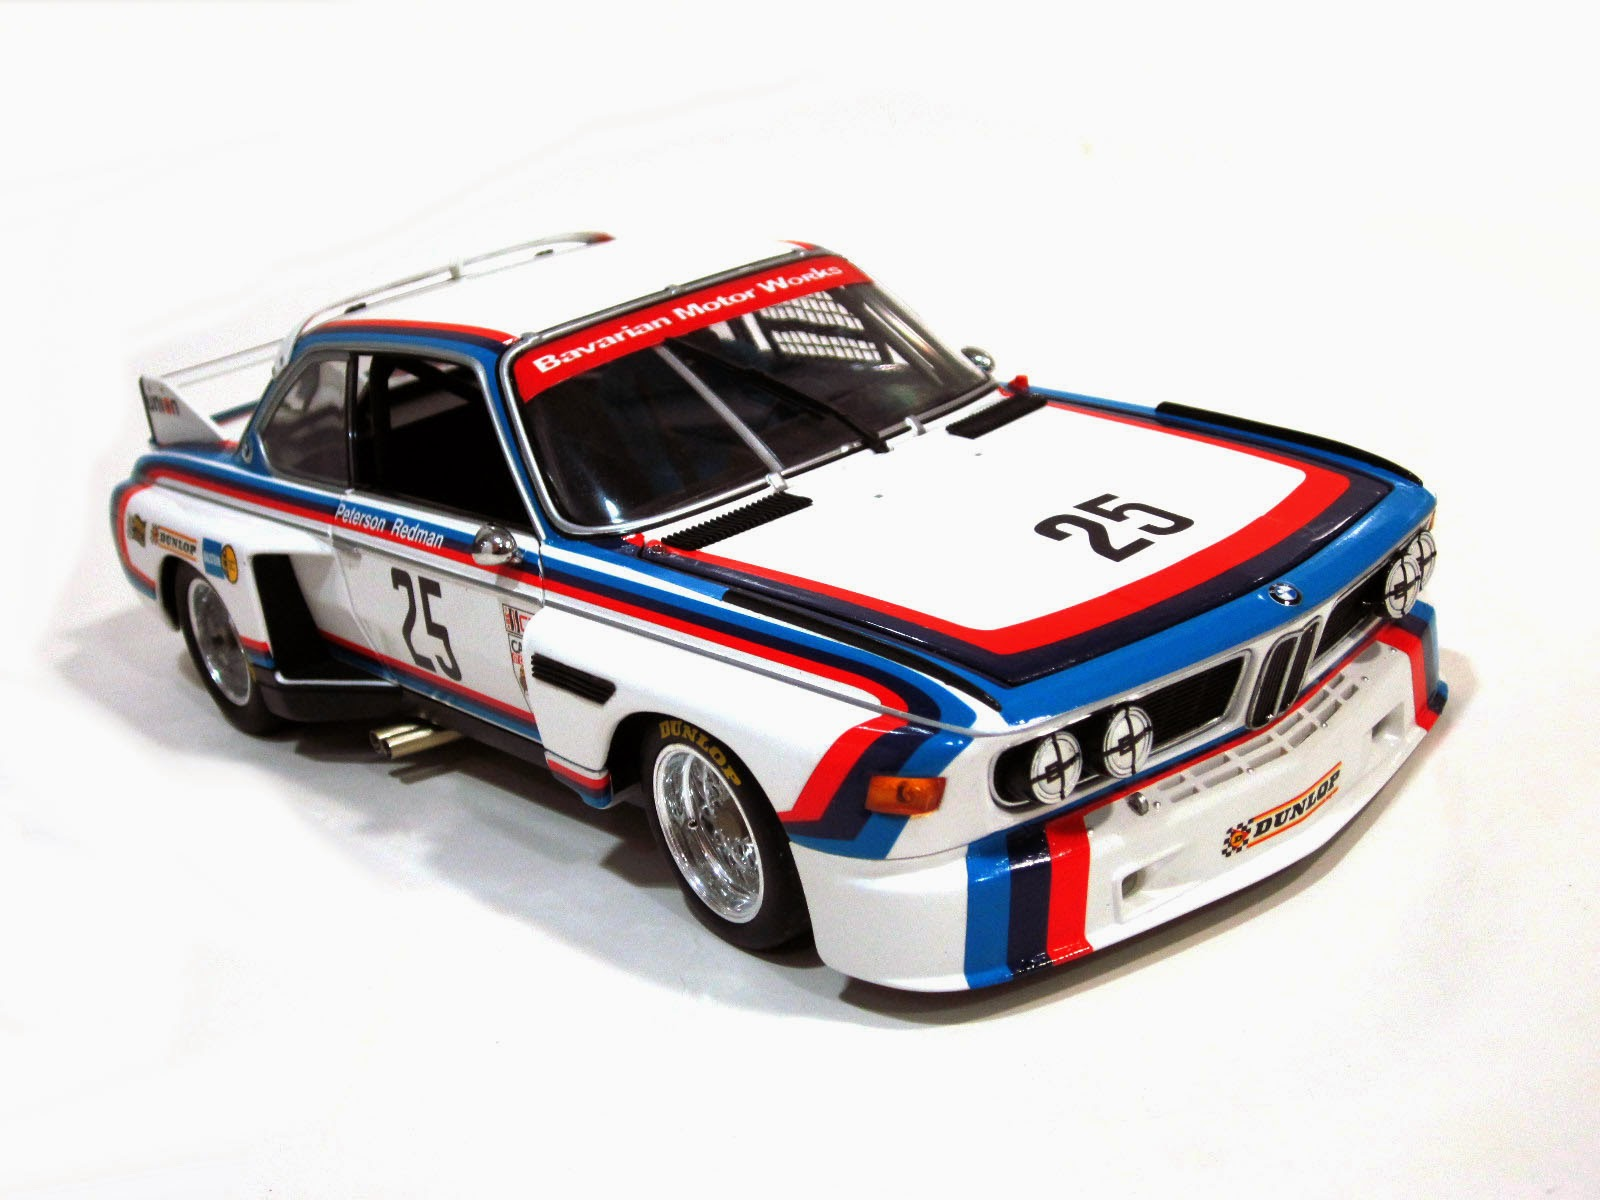 BMW 3.5 IMSA #25 Winner 24 Hours Sebring '75 - Minichamps